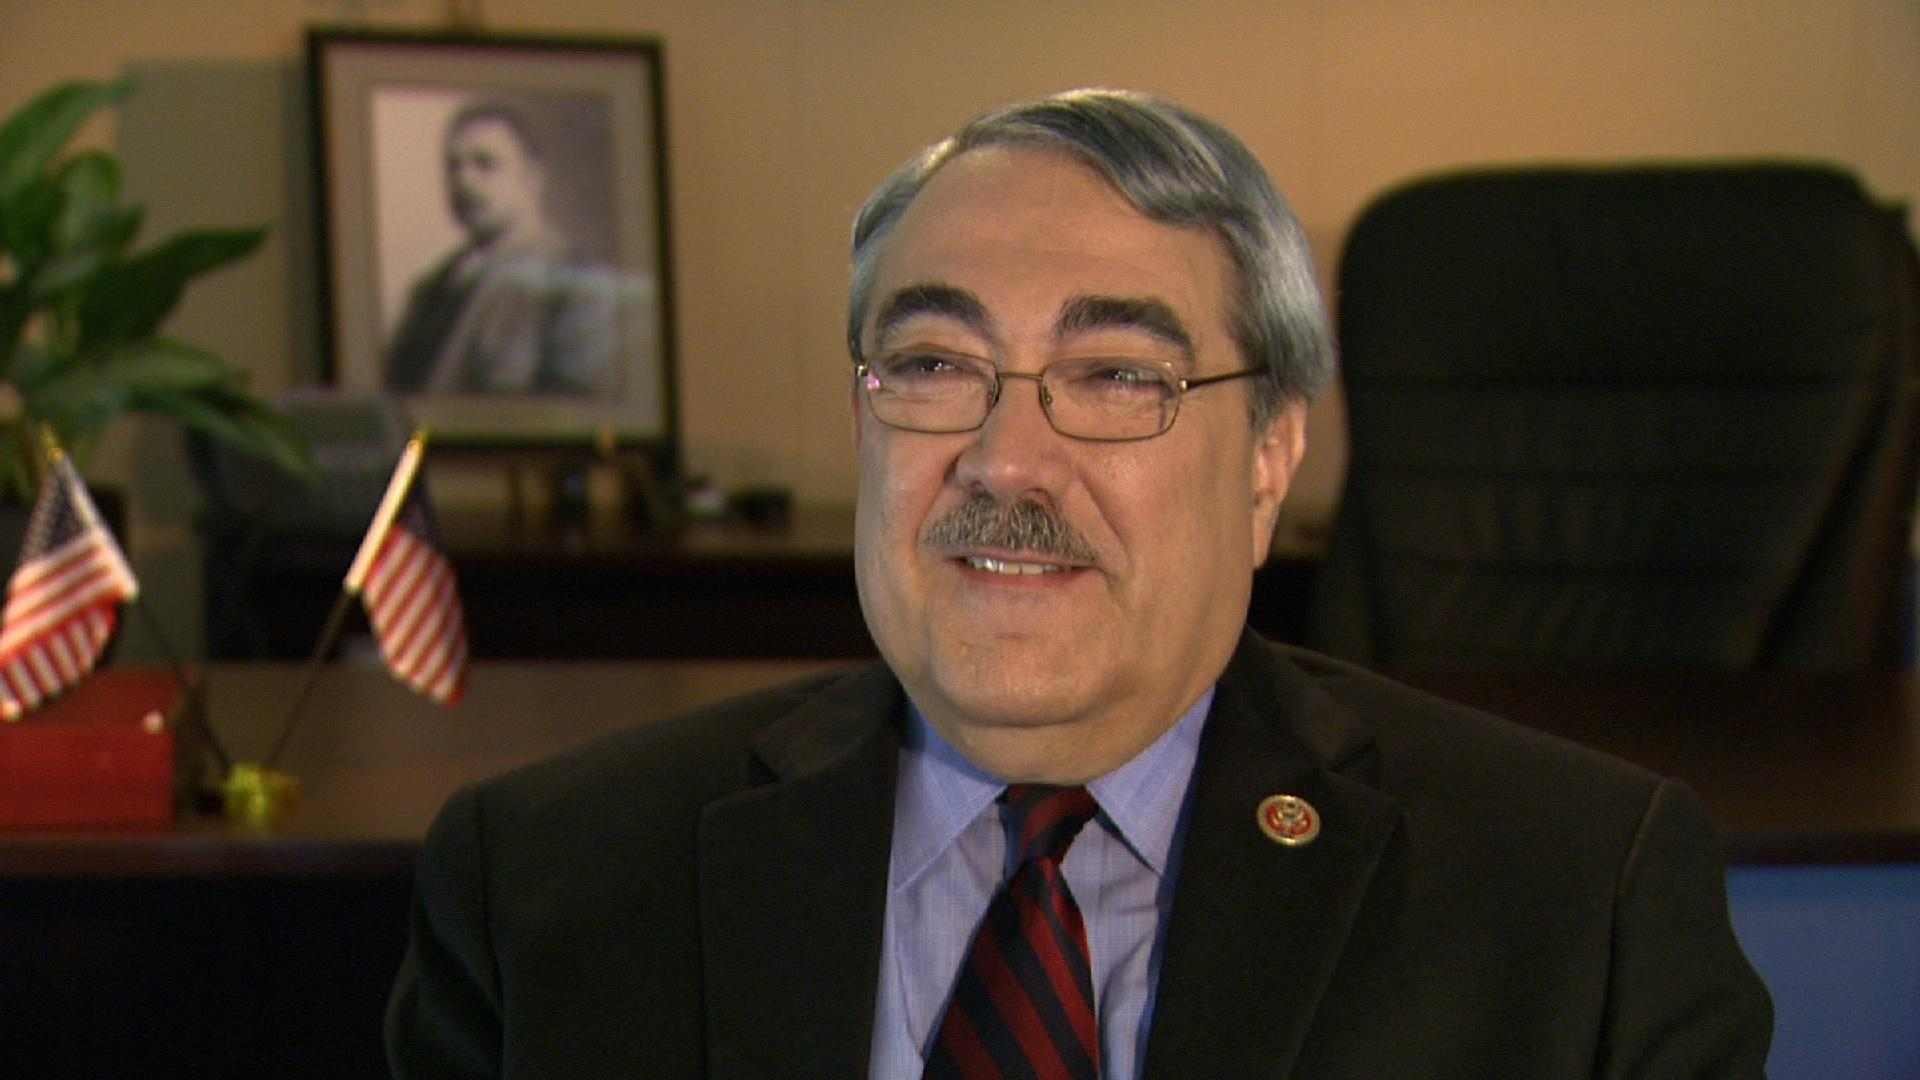 Rep. G. K. Butterfield